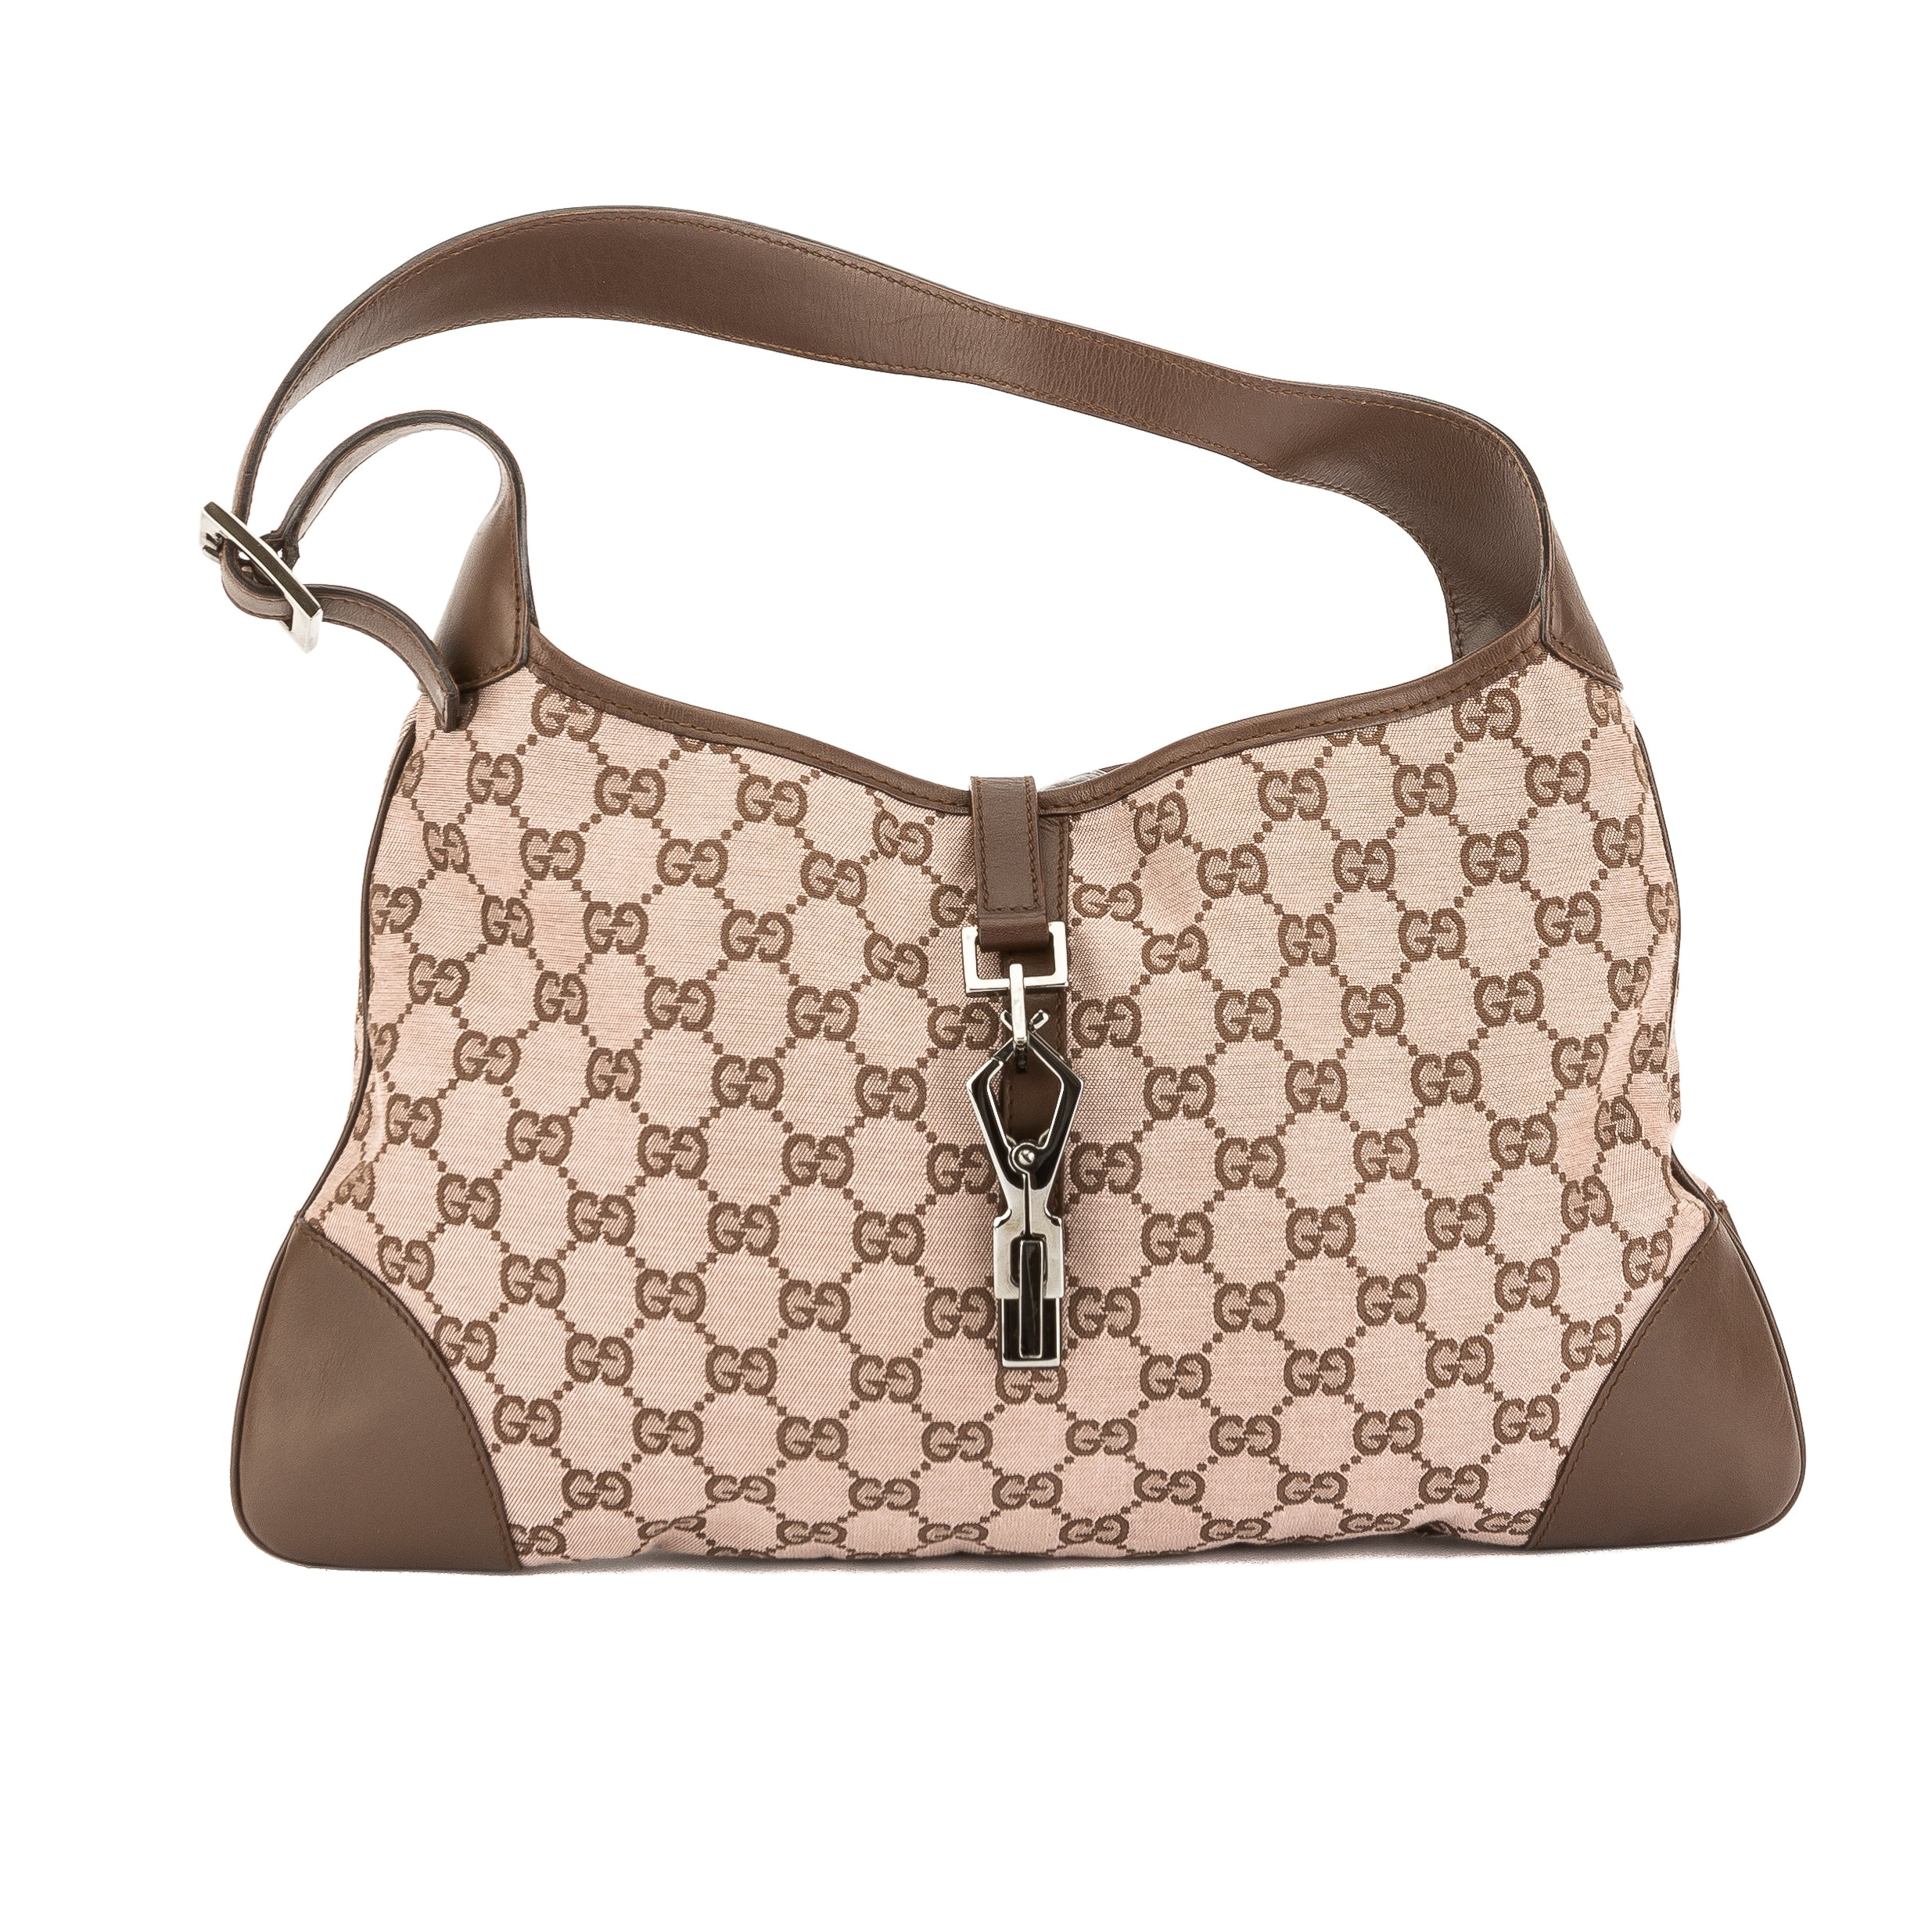 27c1626483a3 Gucci Brown GG Jacquard Canvas Guccisima Jackie Bag (Pre Owned ...